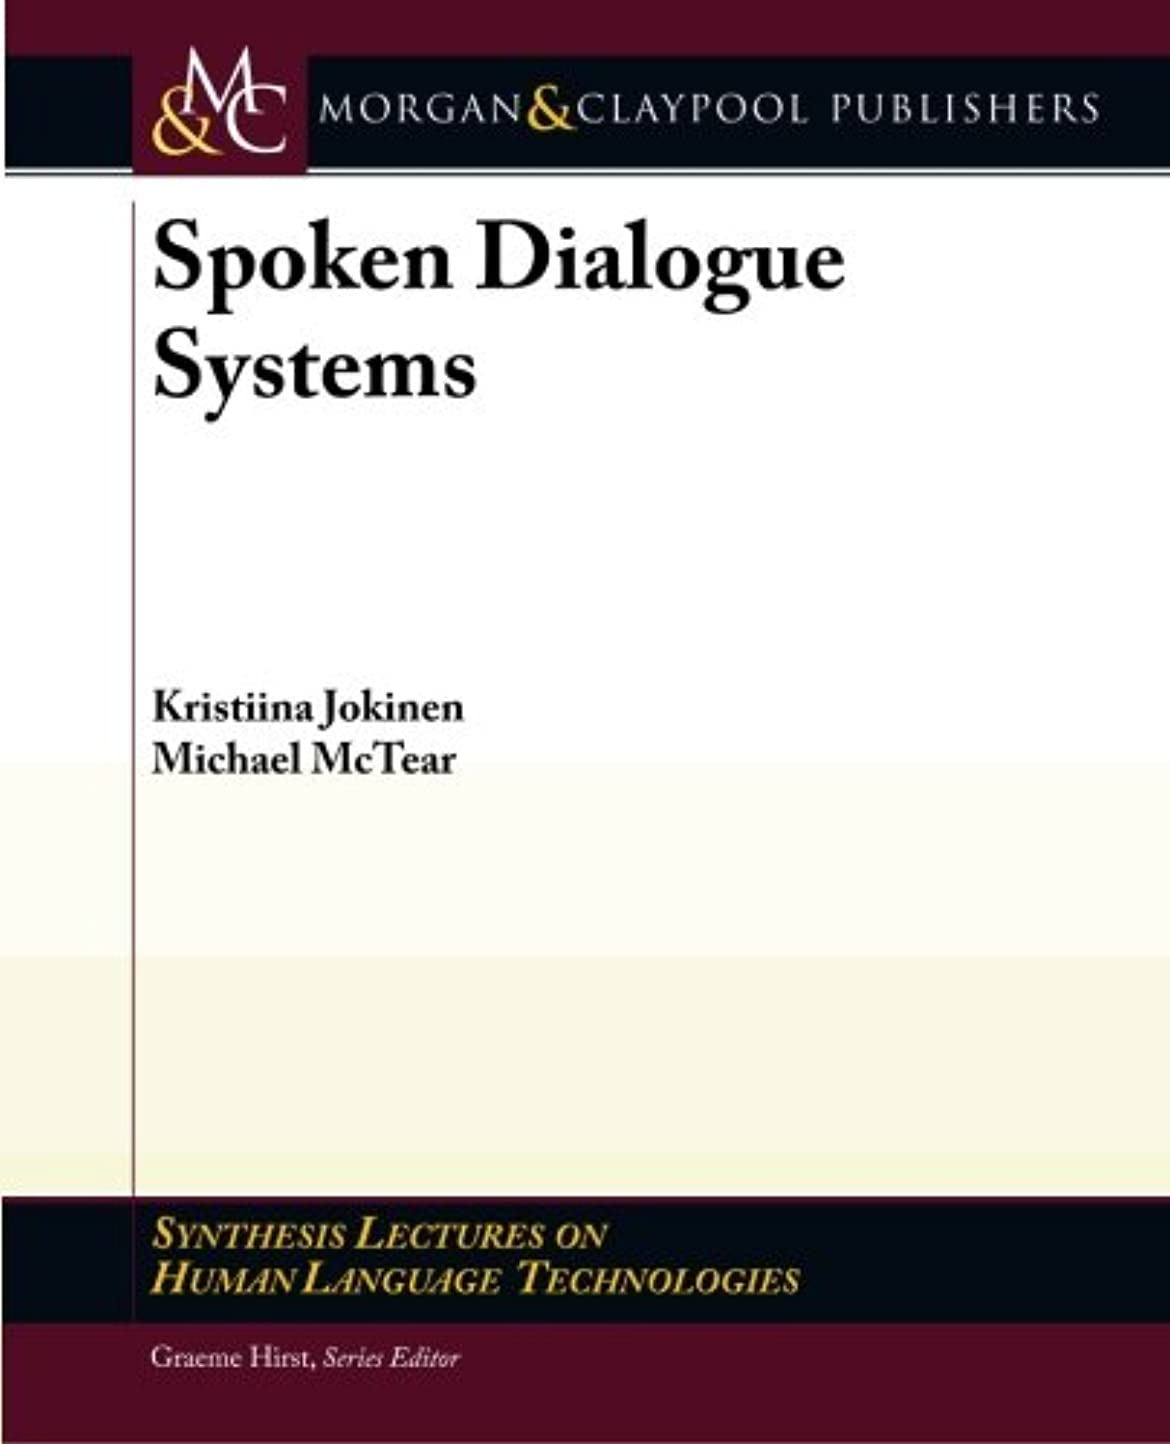 コロニアル後継寛大なSpoken Dialogue Systems (Synthesis Lectures on Human Language Technologies)